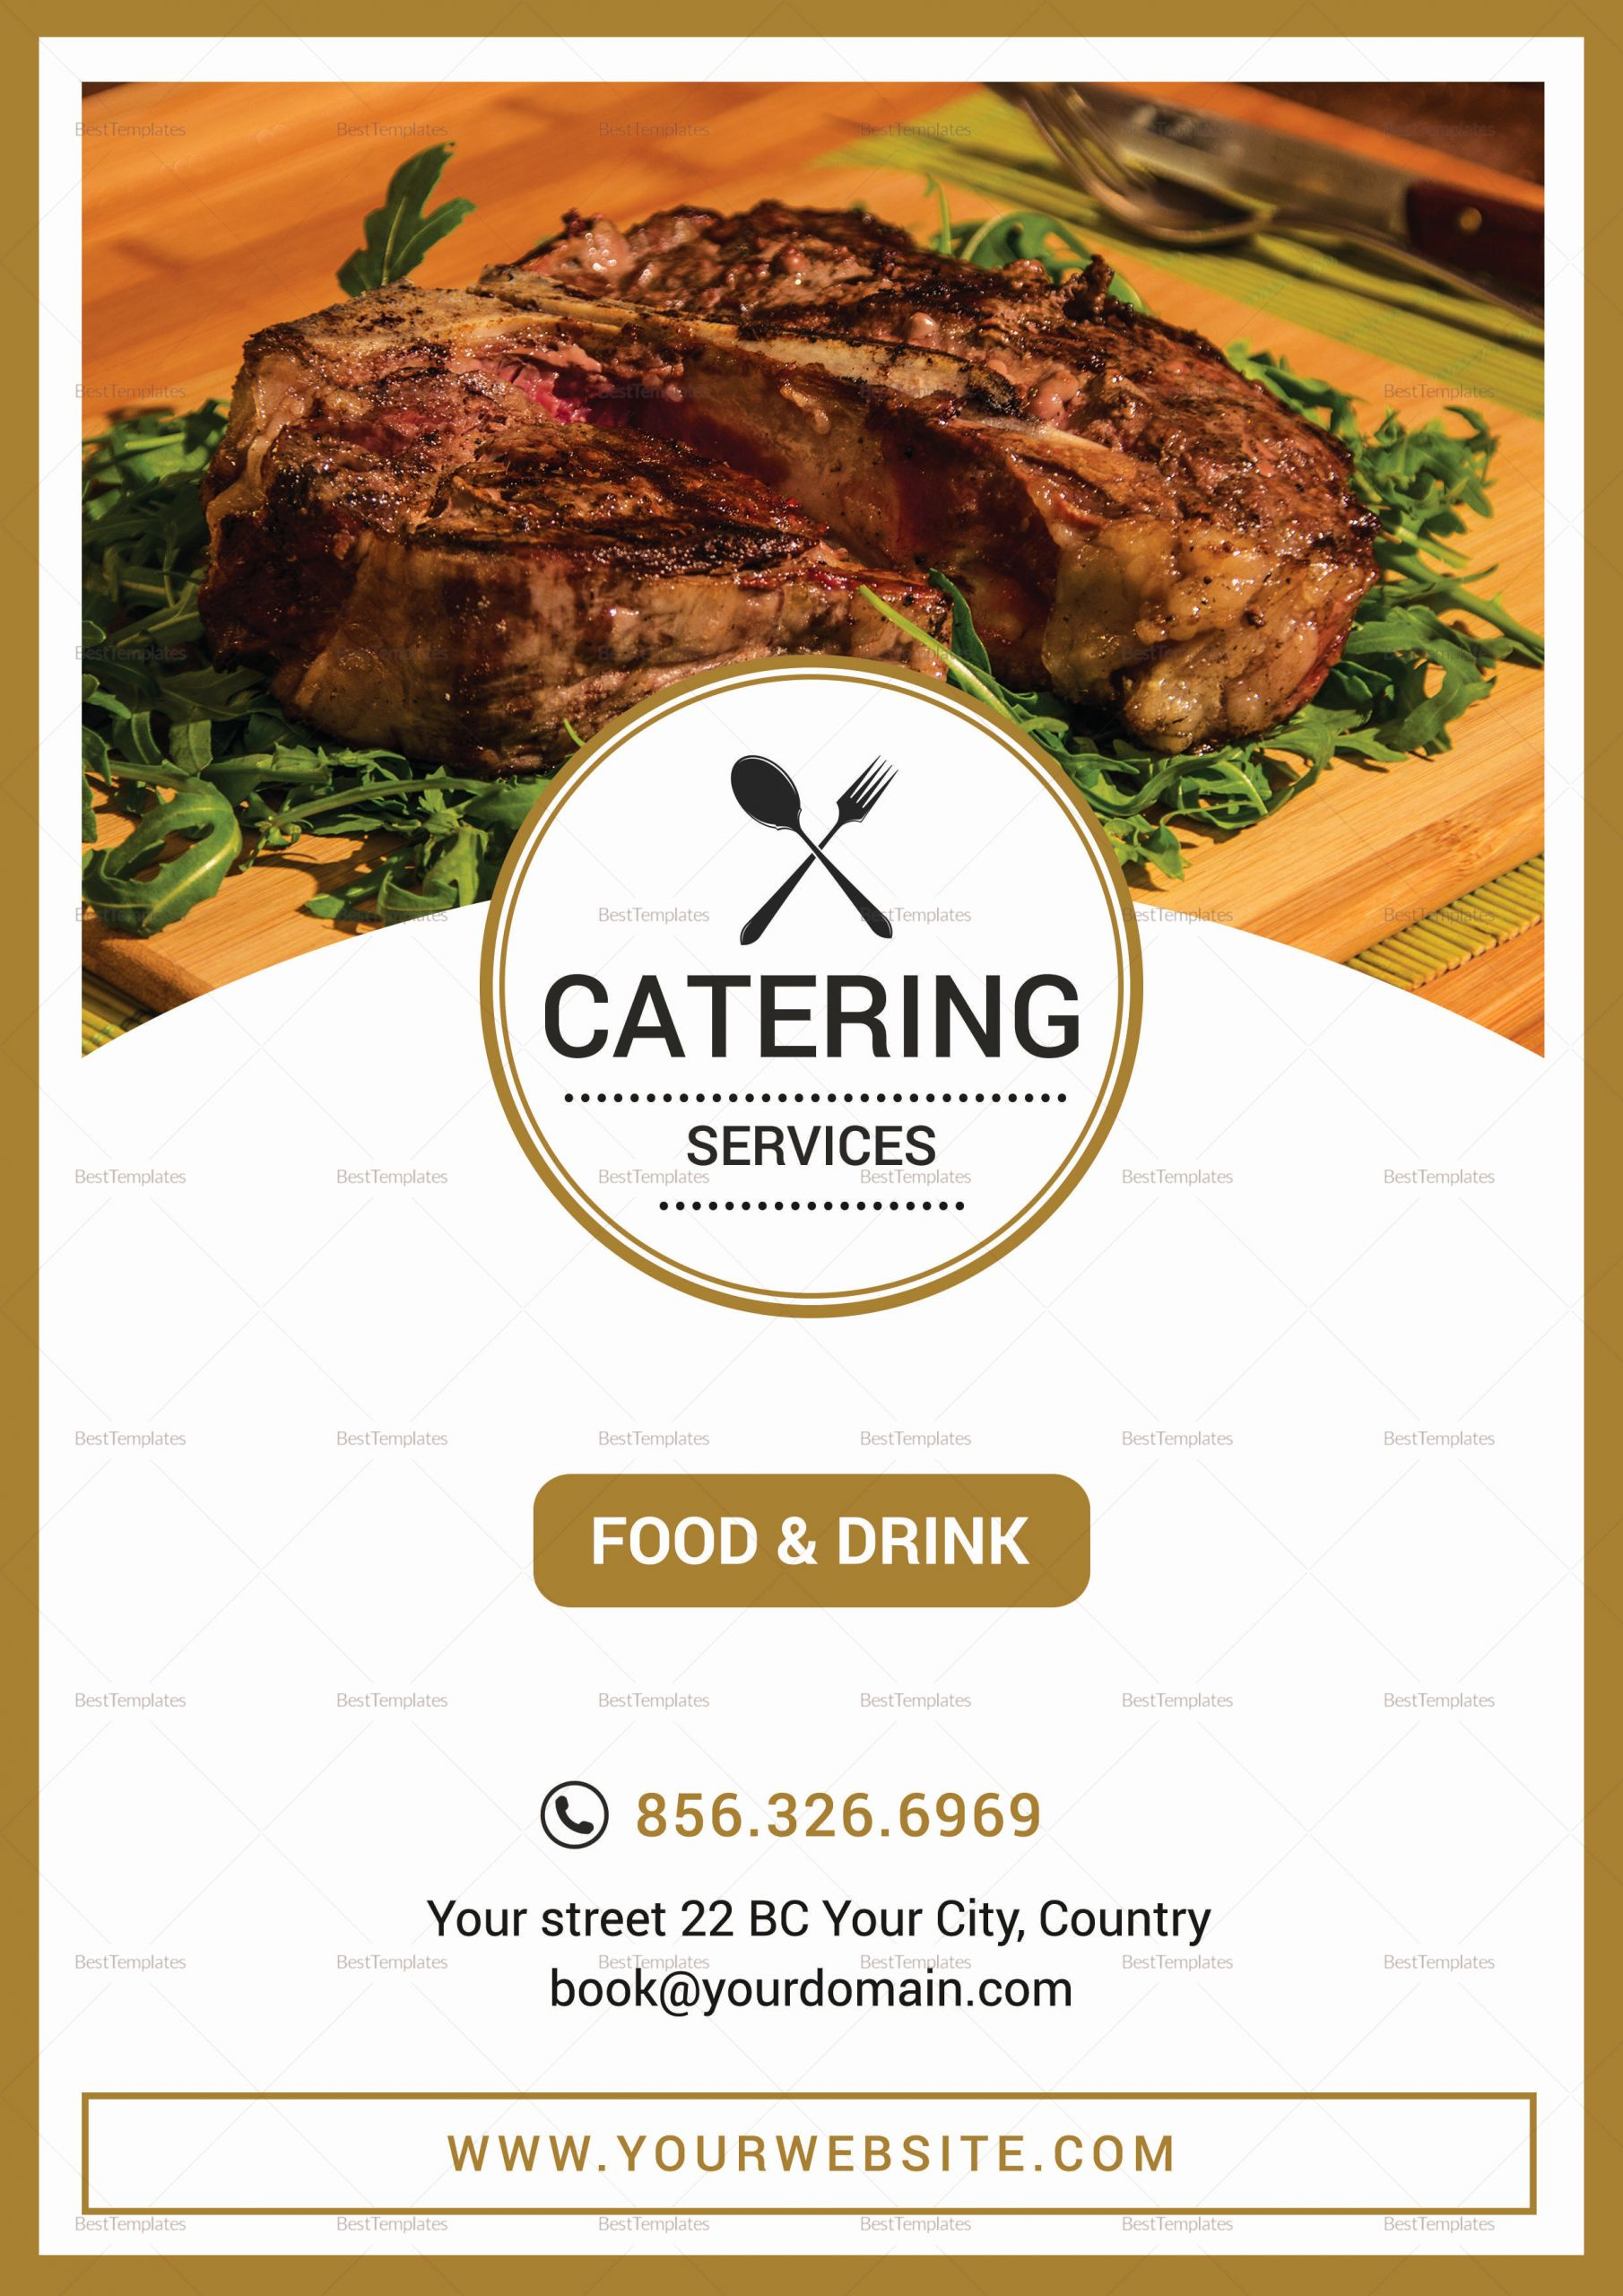 Catering Menu Template Word New Catering Services Menu Design Template In Psd Publisher Word